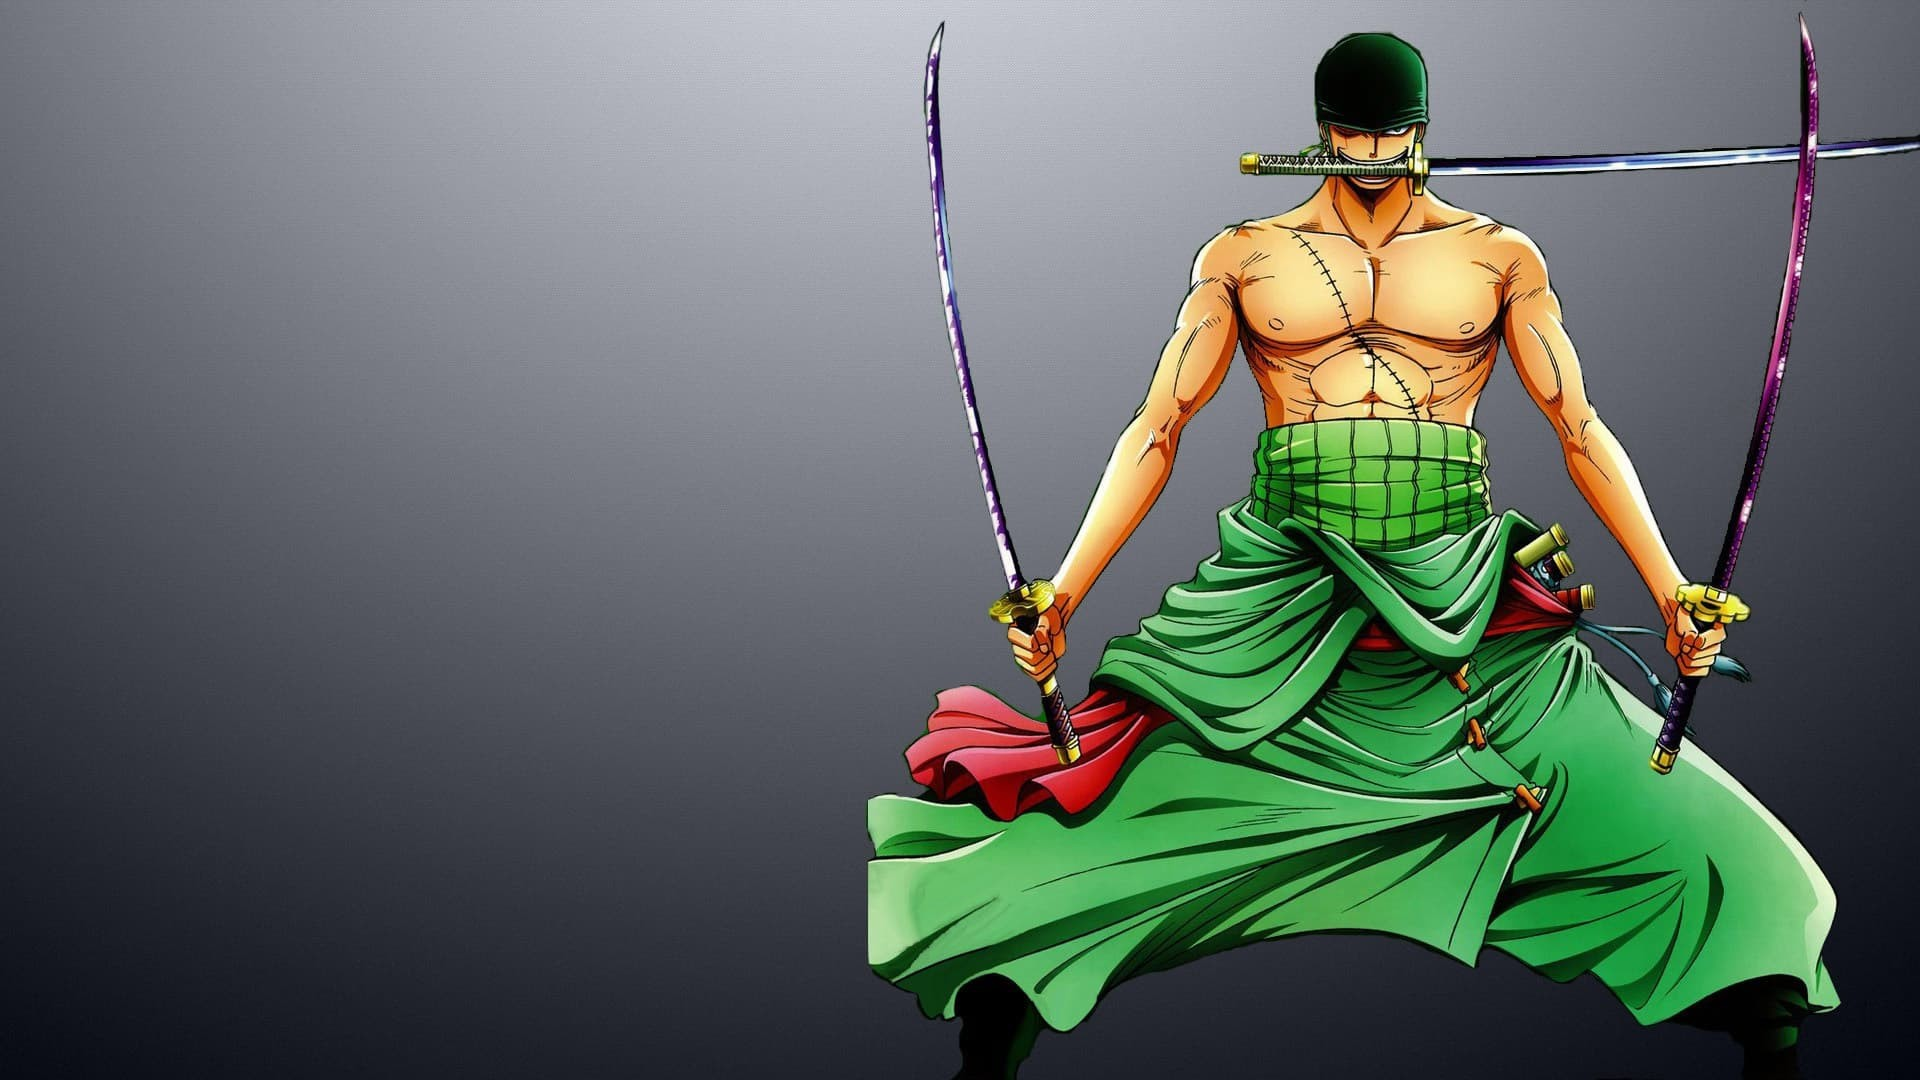 Roronoa zoro iphone wallpaper is a wallpaper which is related to hd and 4k images for mobile phone, tablet, laptop and pc. Zoro One Piece Wallpaper (65+ images)